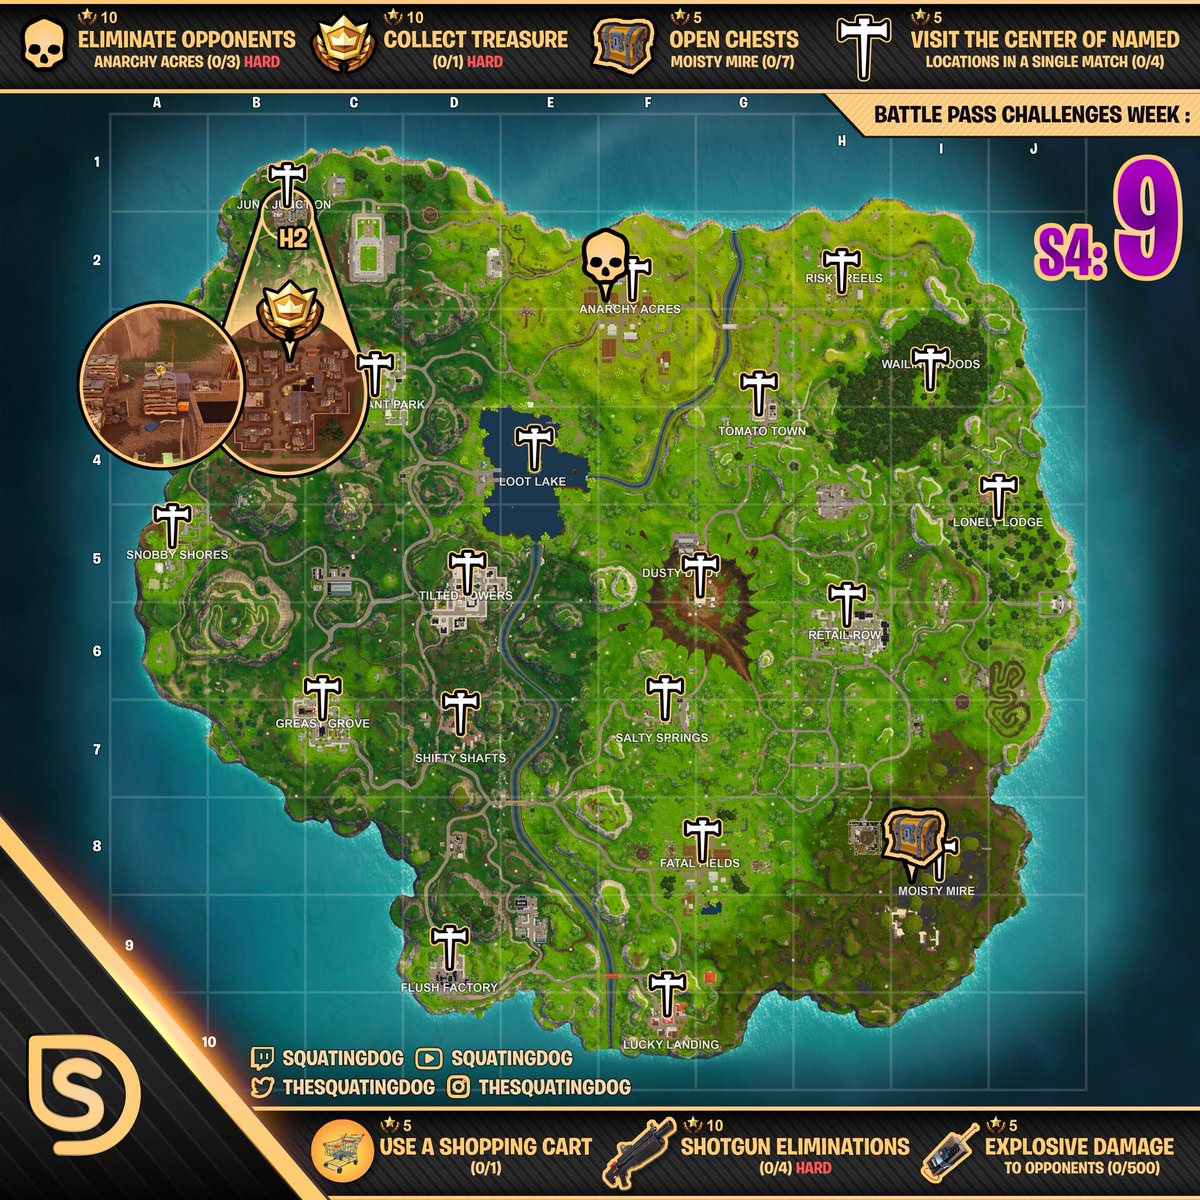 Cheat Sheet Map For Fortnite Battle Royale Season 4 Week 9